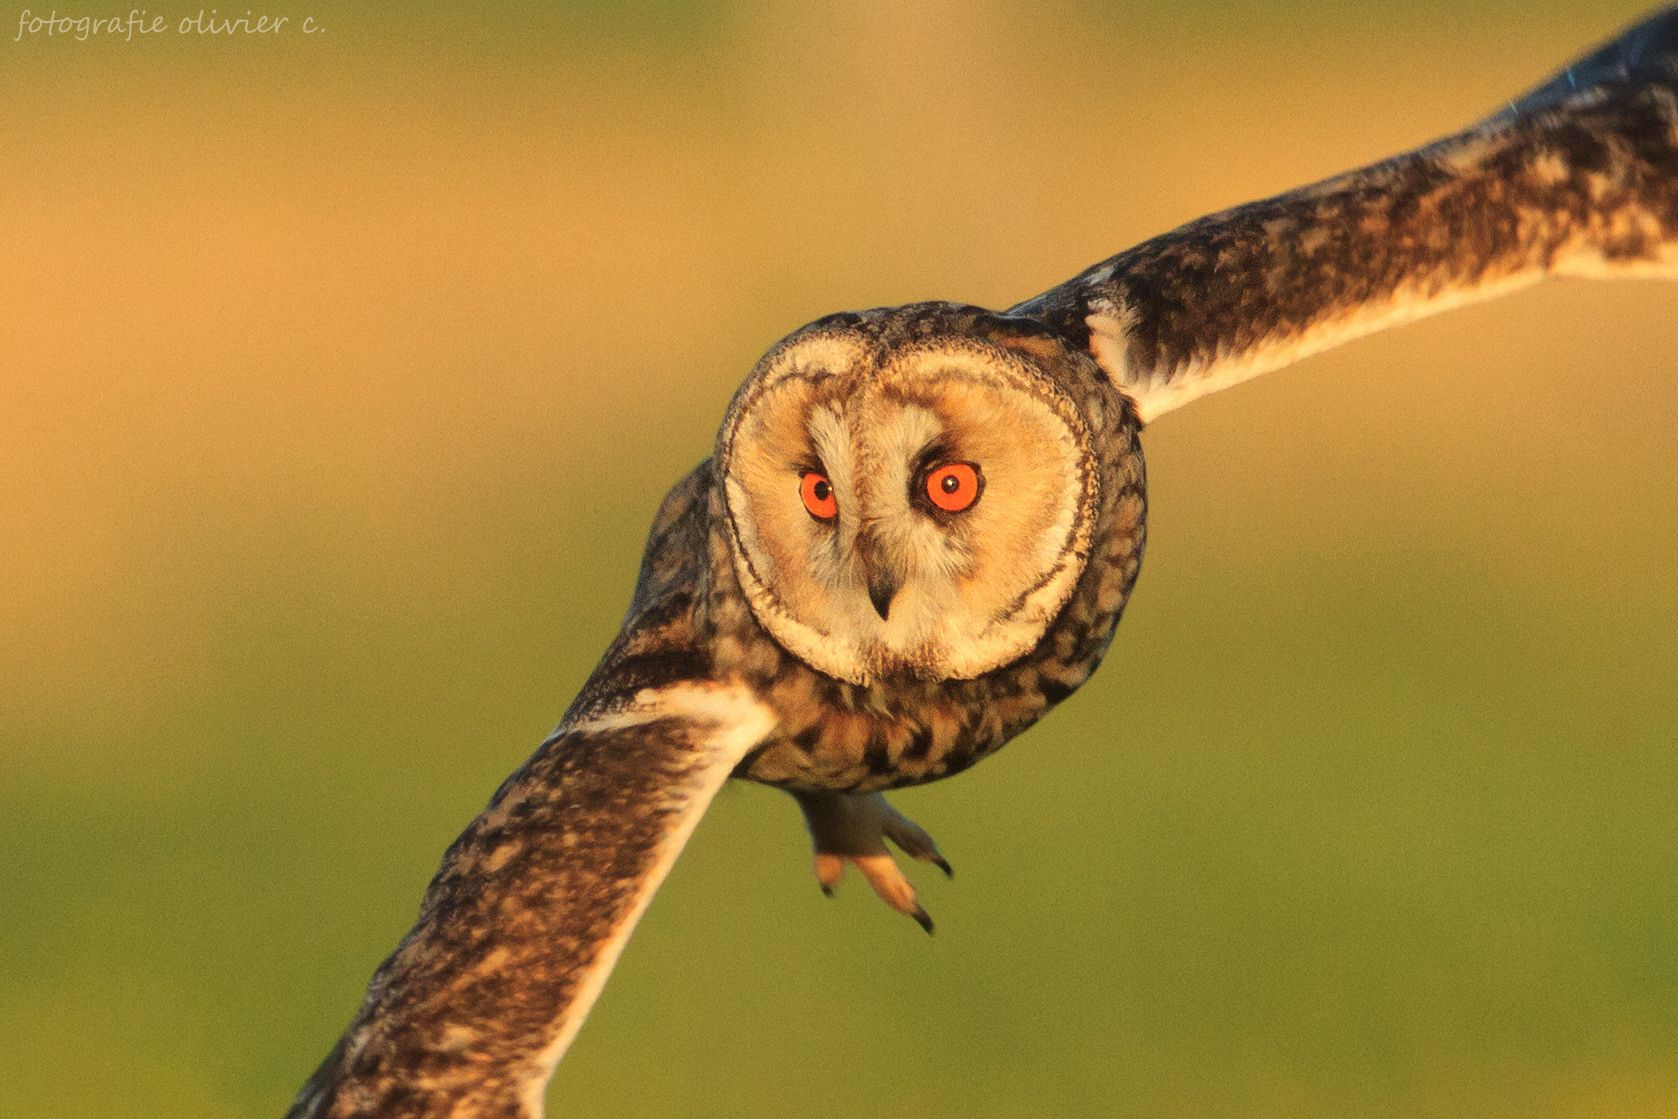 Focus and super close up by Olivier Colle on 500px